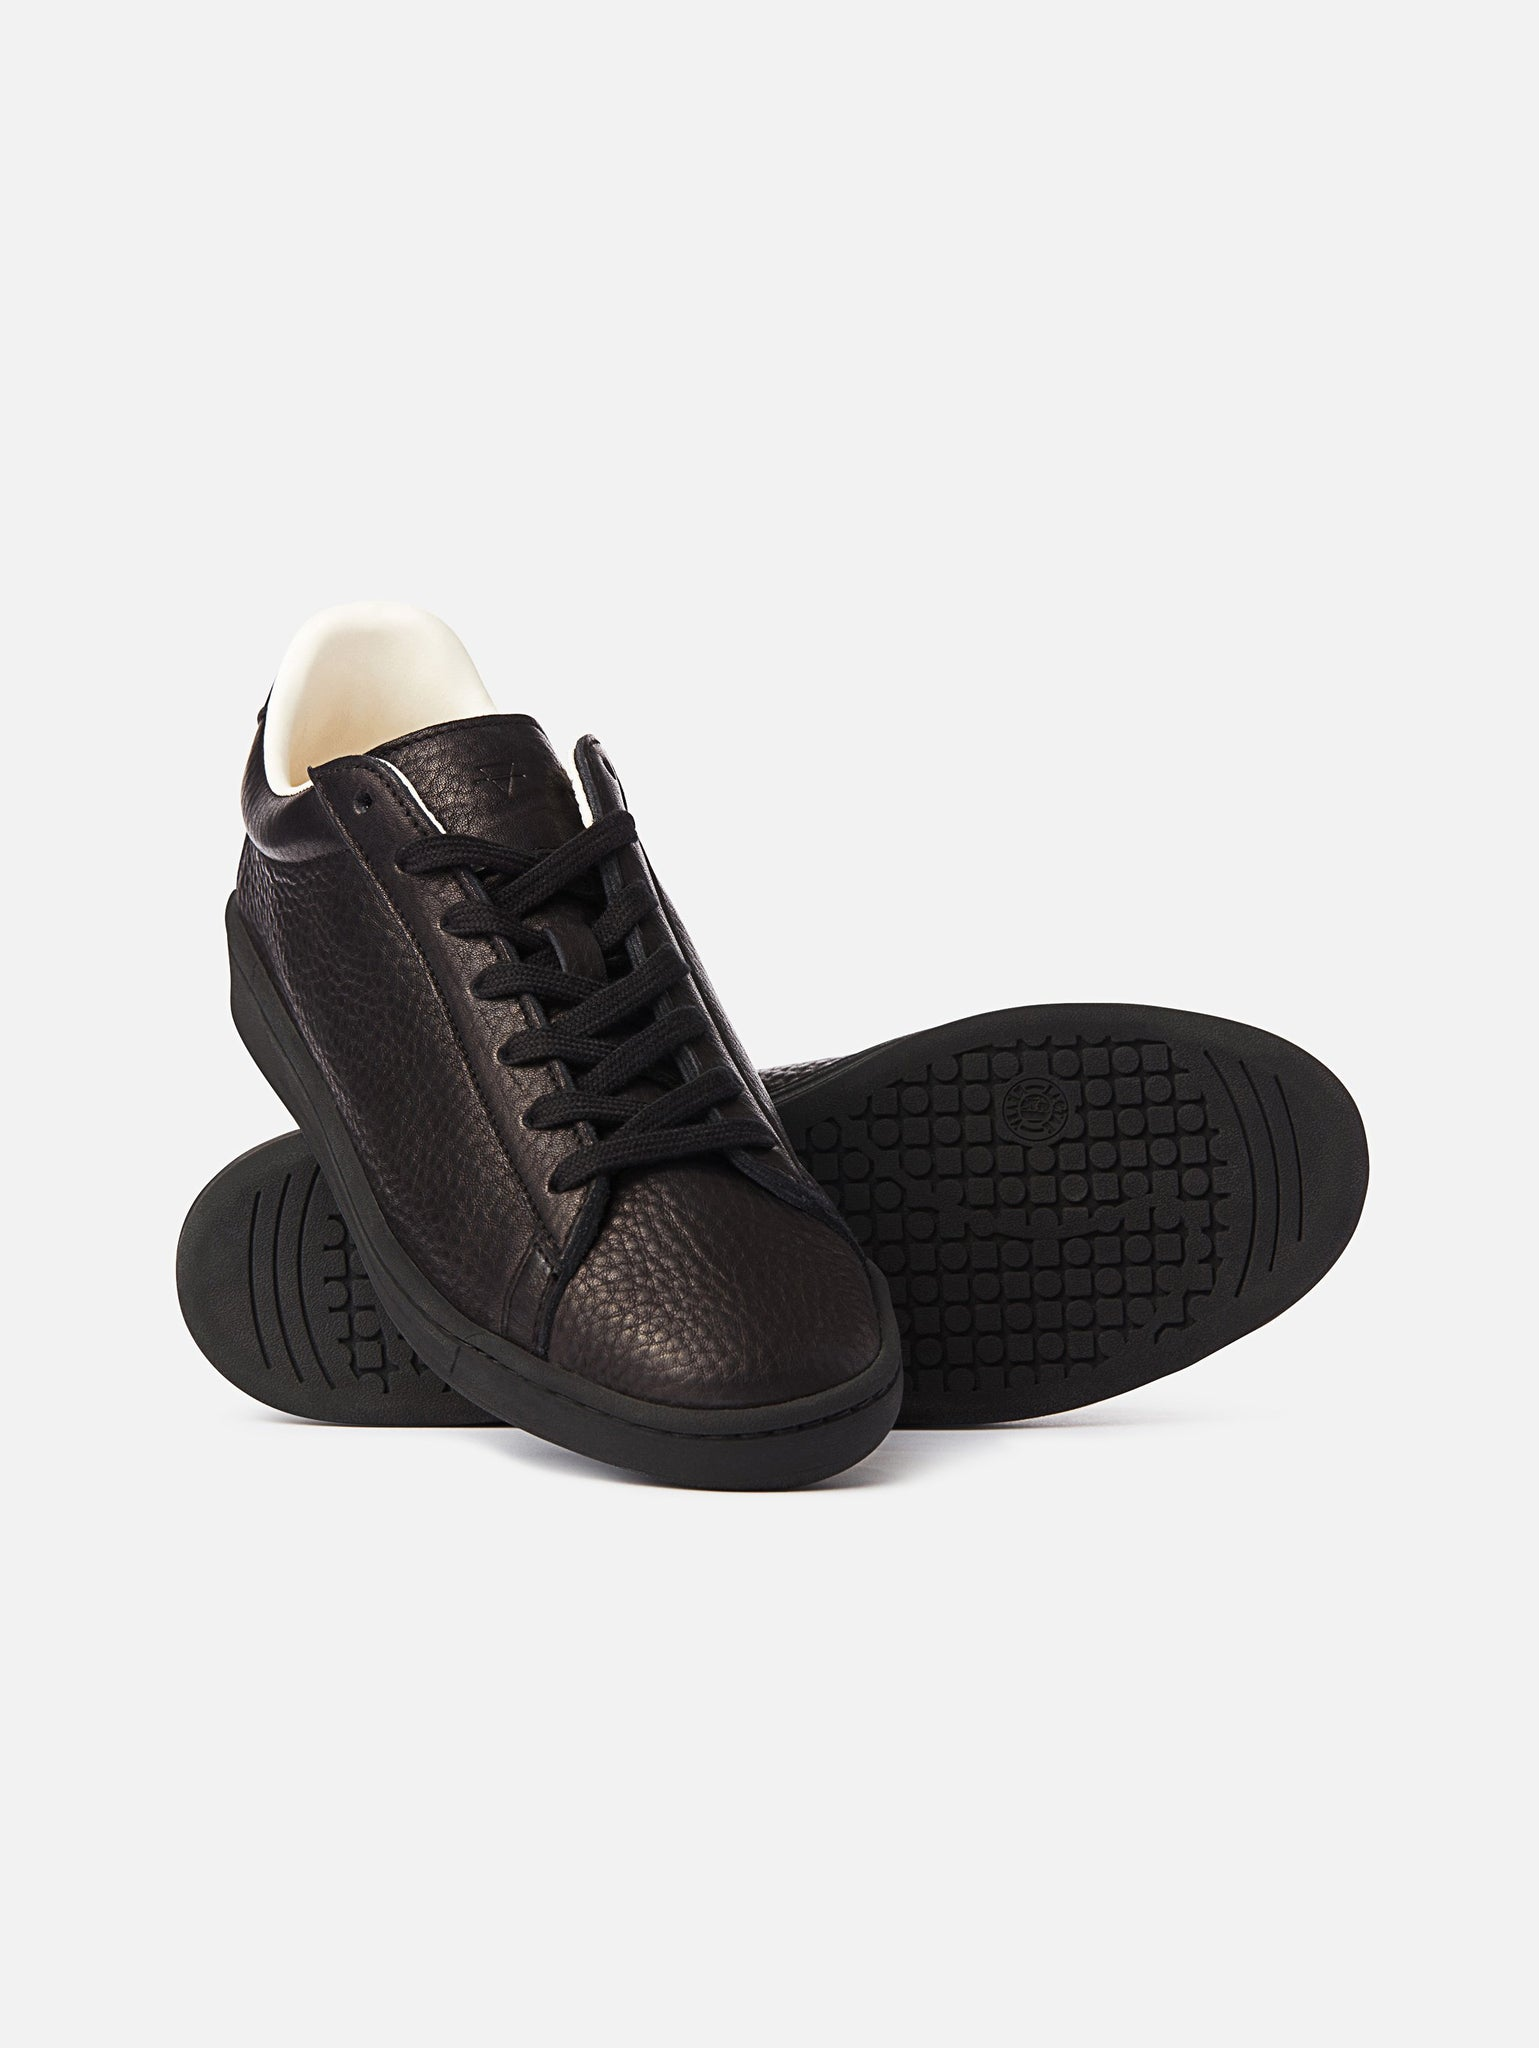 The 1970 - All Black Leather Trainerproduct_vendor#product_type